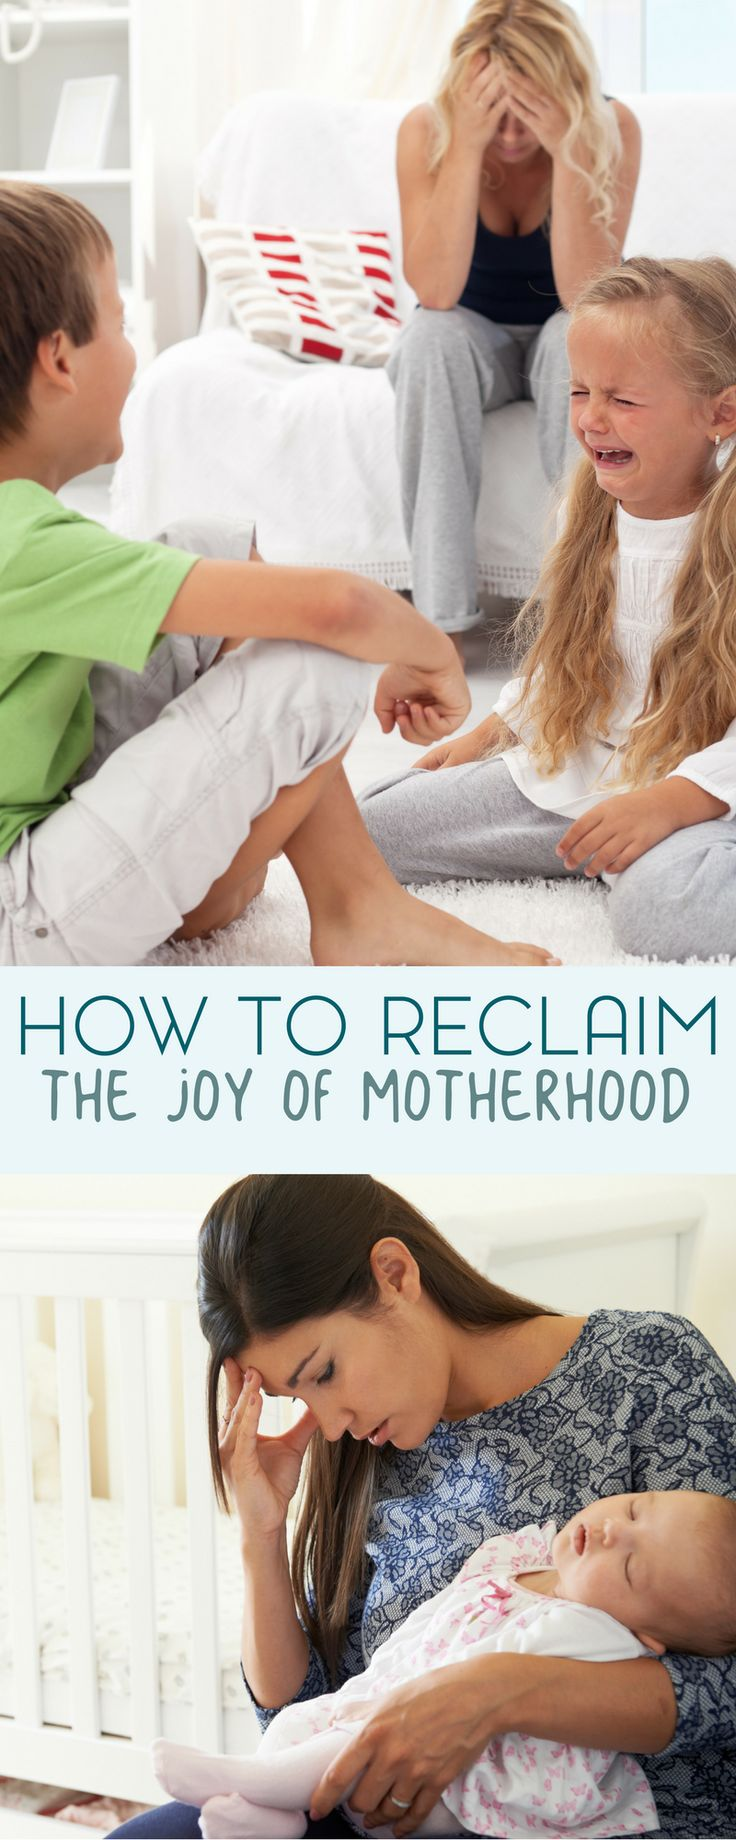 When motherhood is stressful, it may be difficult to find the positives. Here's how to reclaim the joy of being a mom.